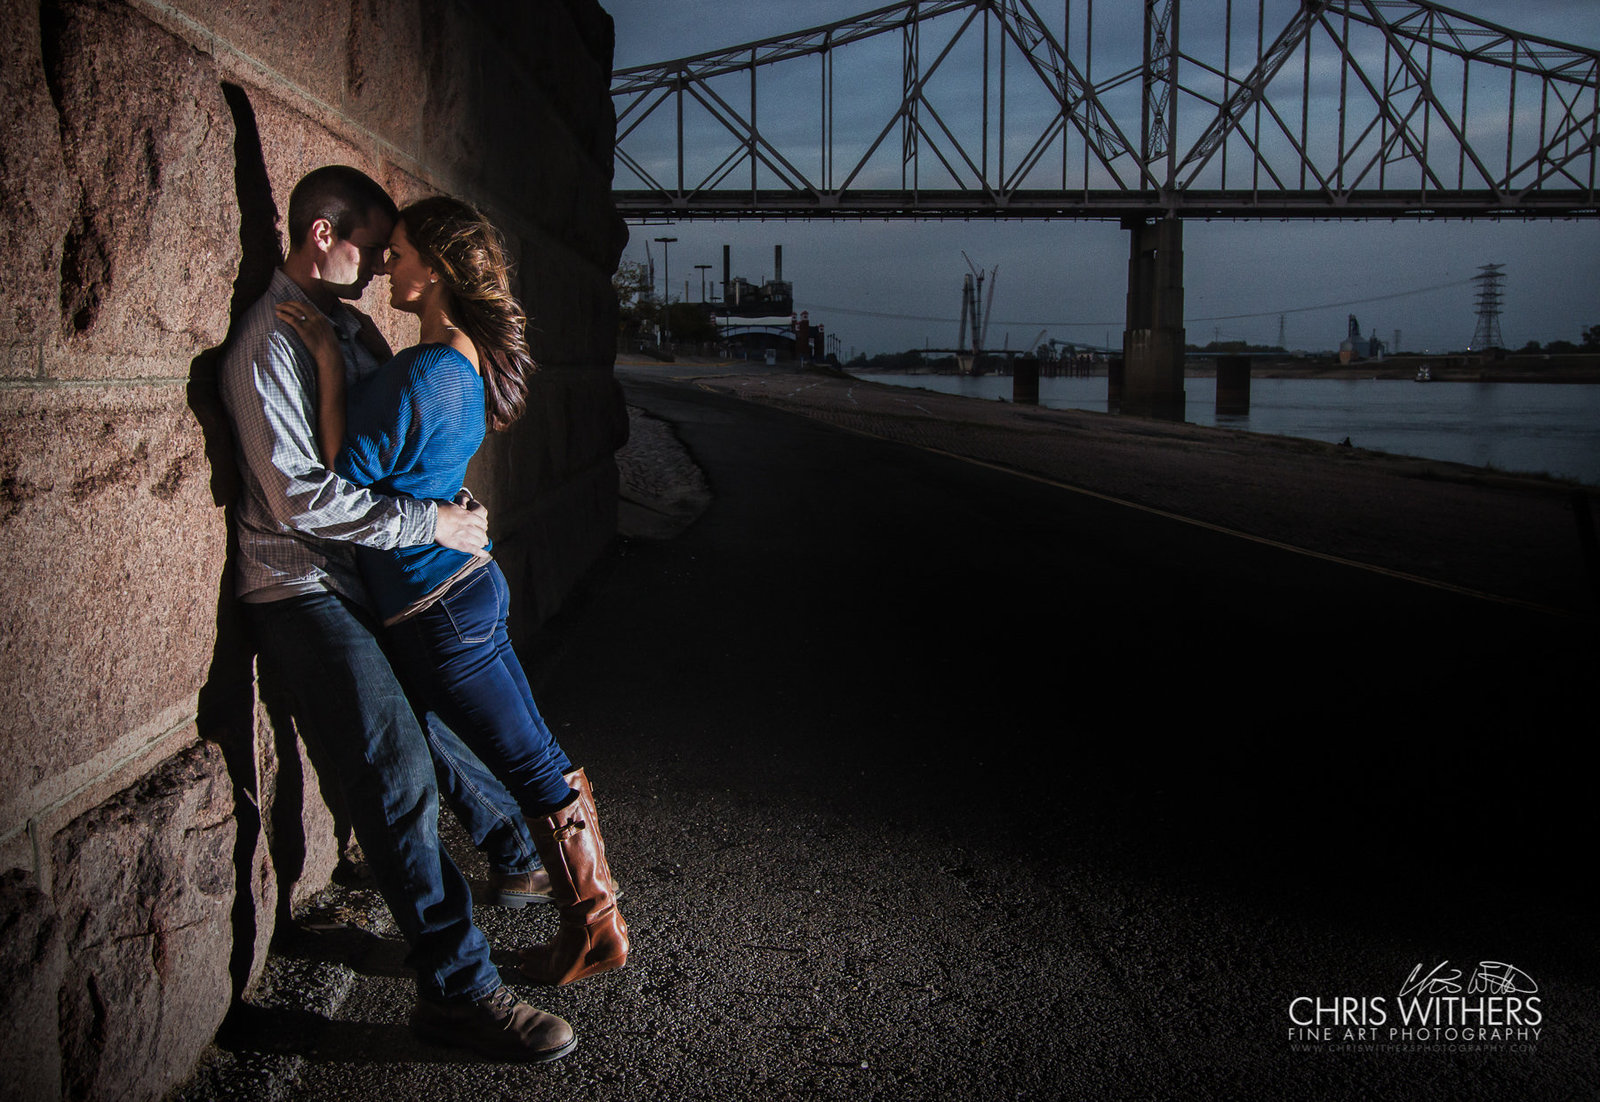 Springfield Illinois Wedding Photographer - Chris Withers Photography (8 of 159)